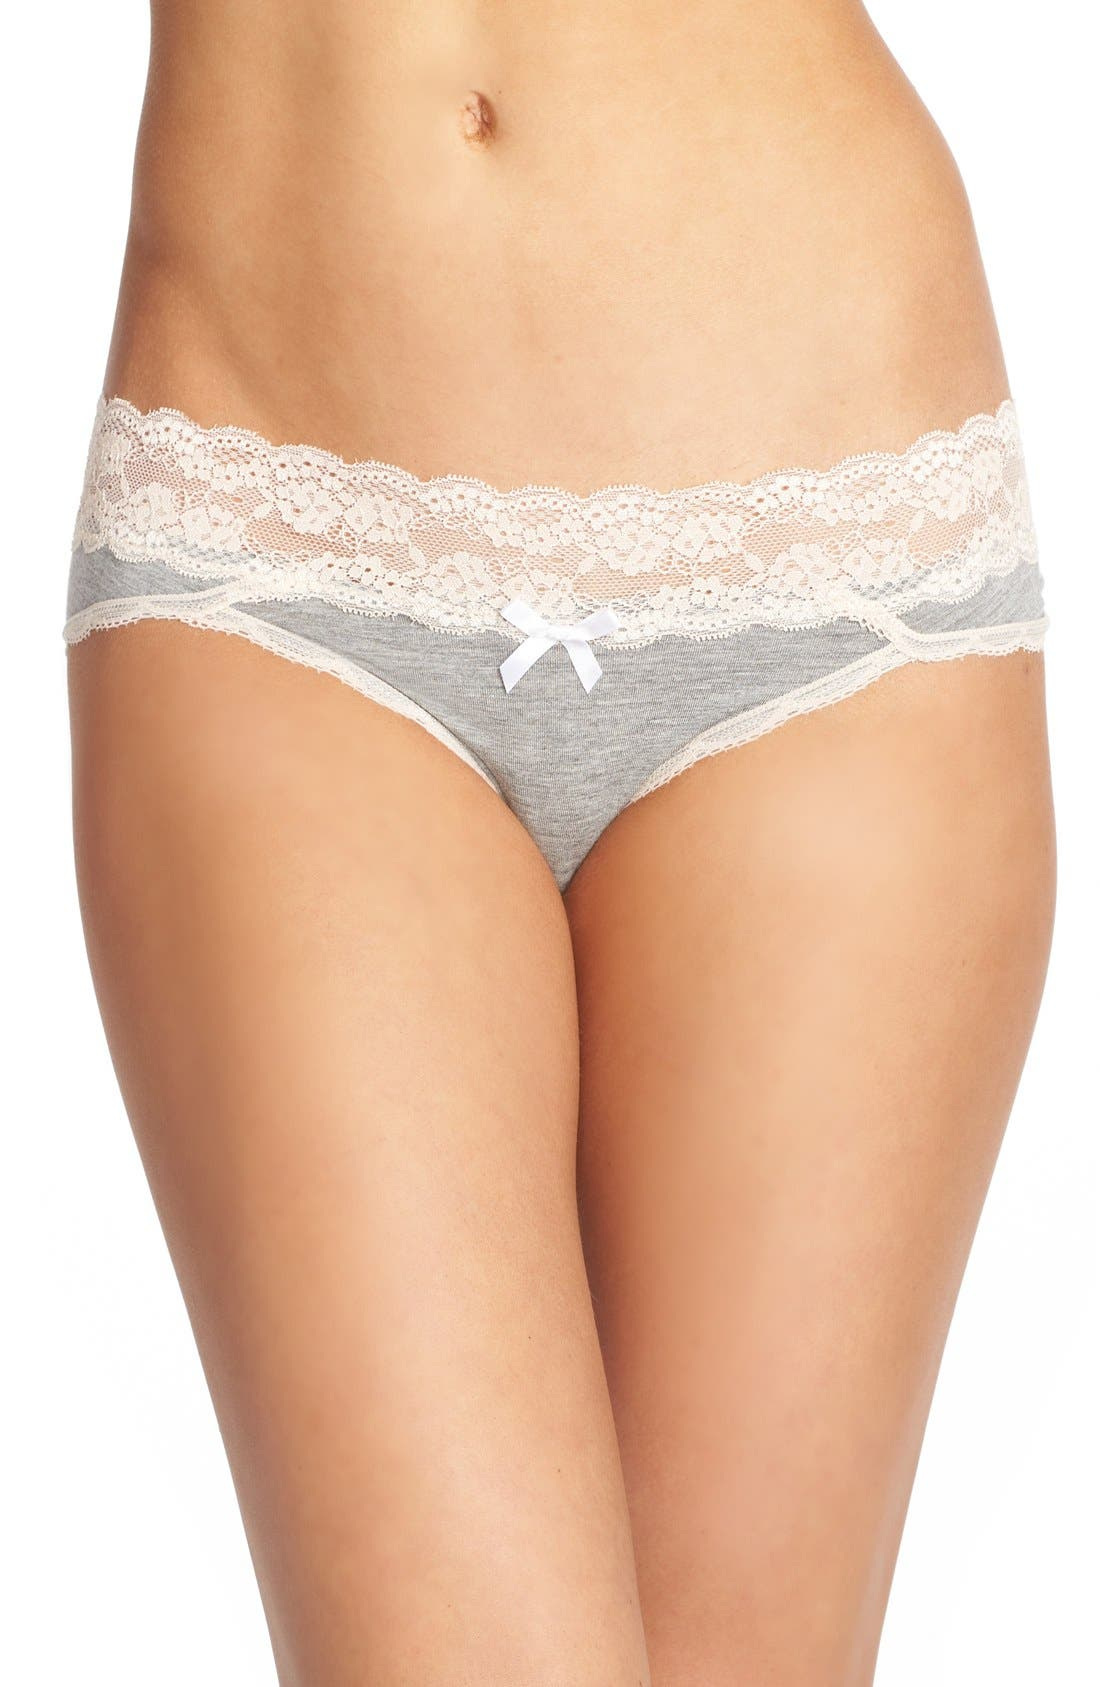 Ahna Hipster Panties,                             Main thumbnail 1, color,                             HEATHER GREY/ SEASHELL